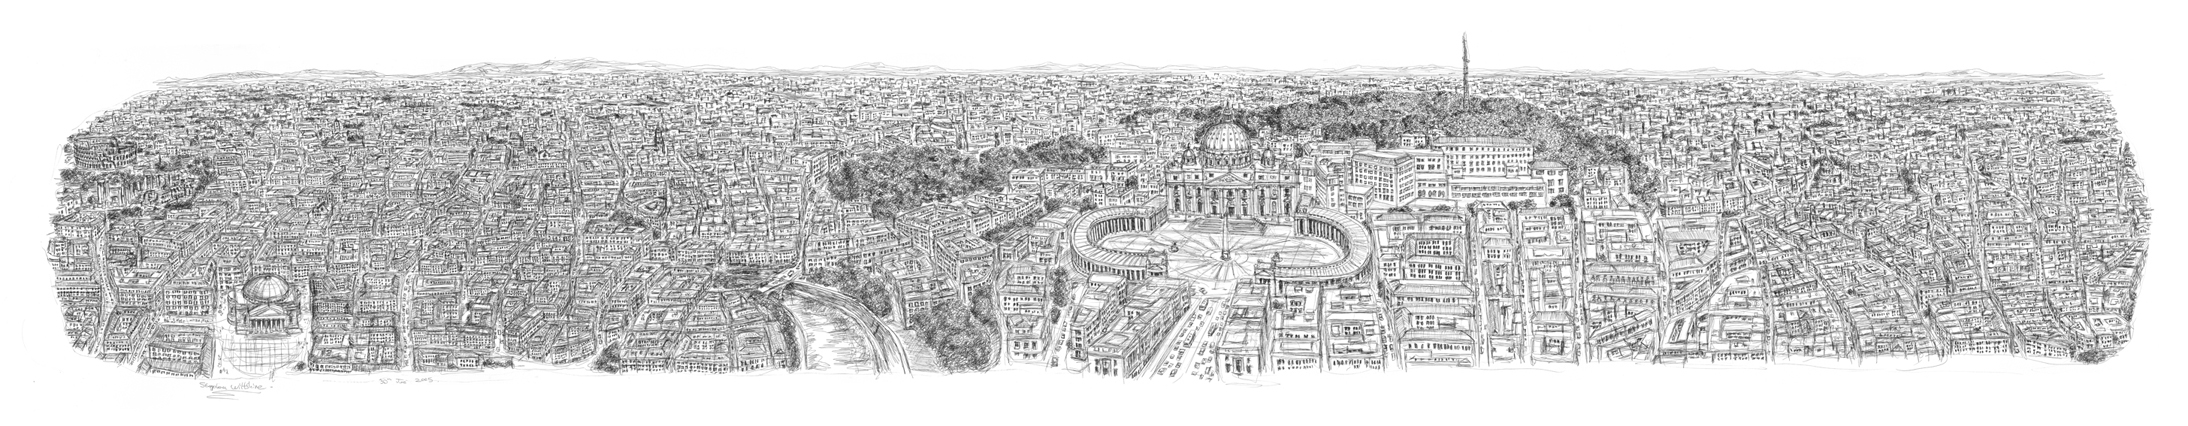 Rome_Panorama_by_Stephen_Wiltshire.jpg